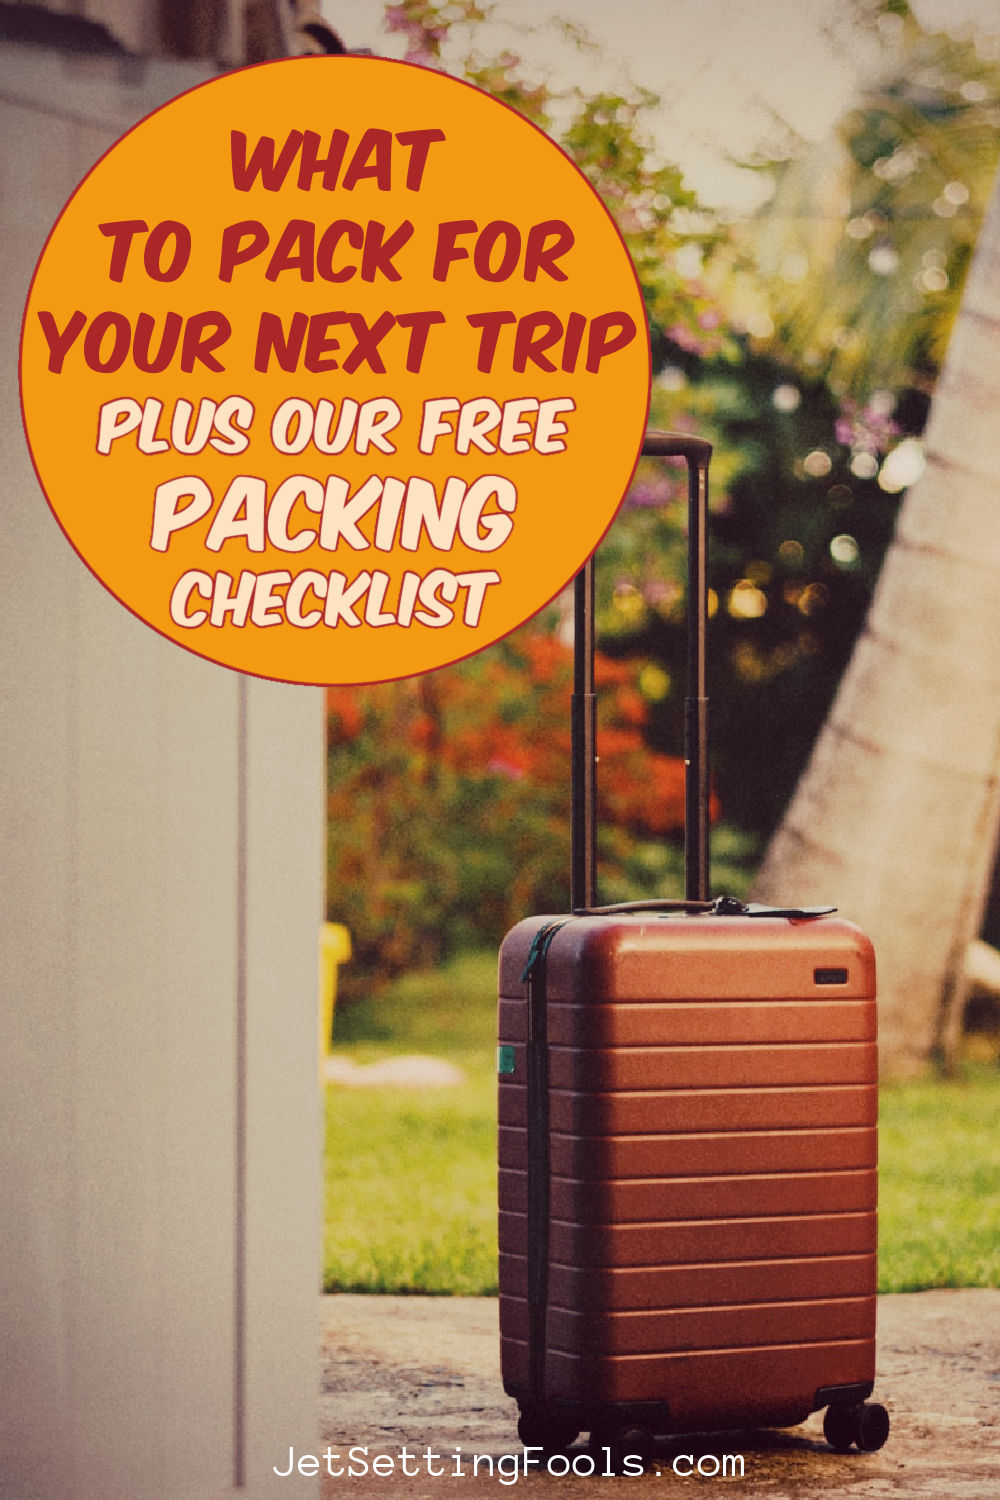 What To Pack Free Packing Checklist by JetSettingFools.com